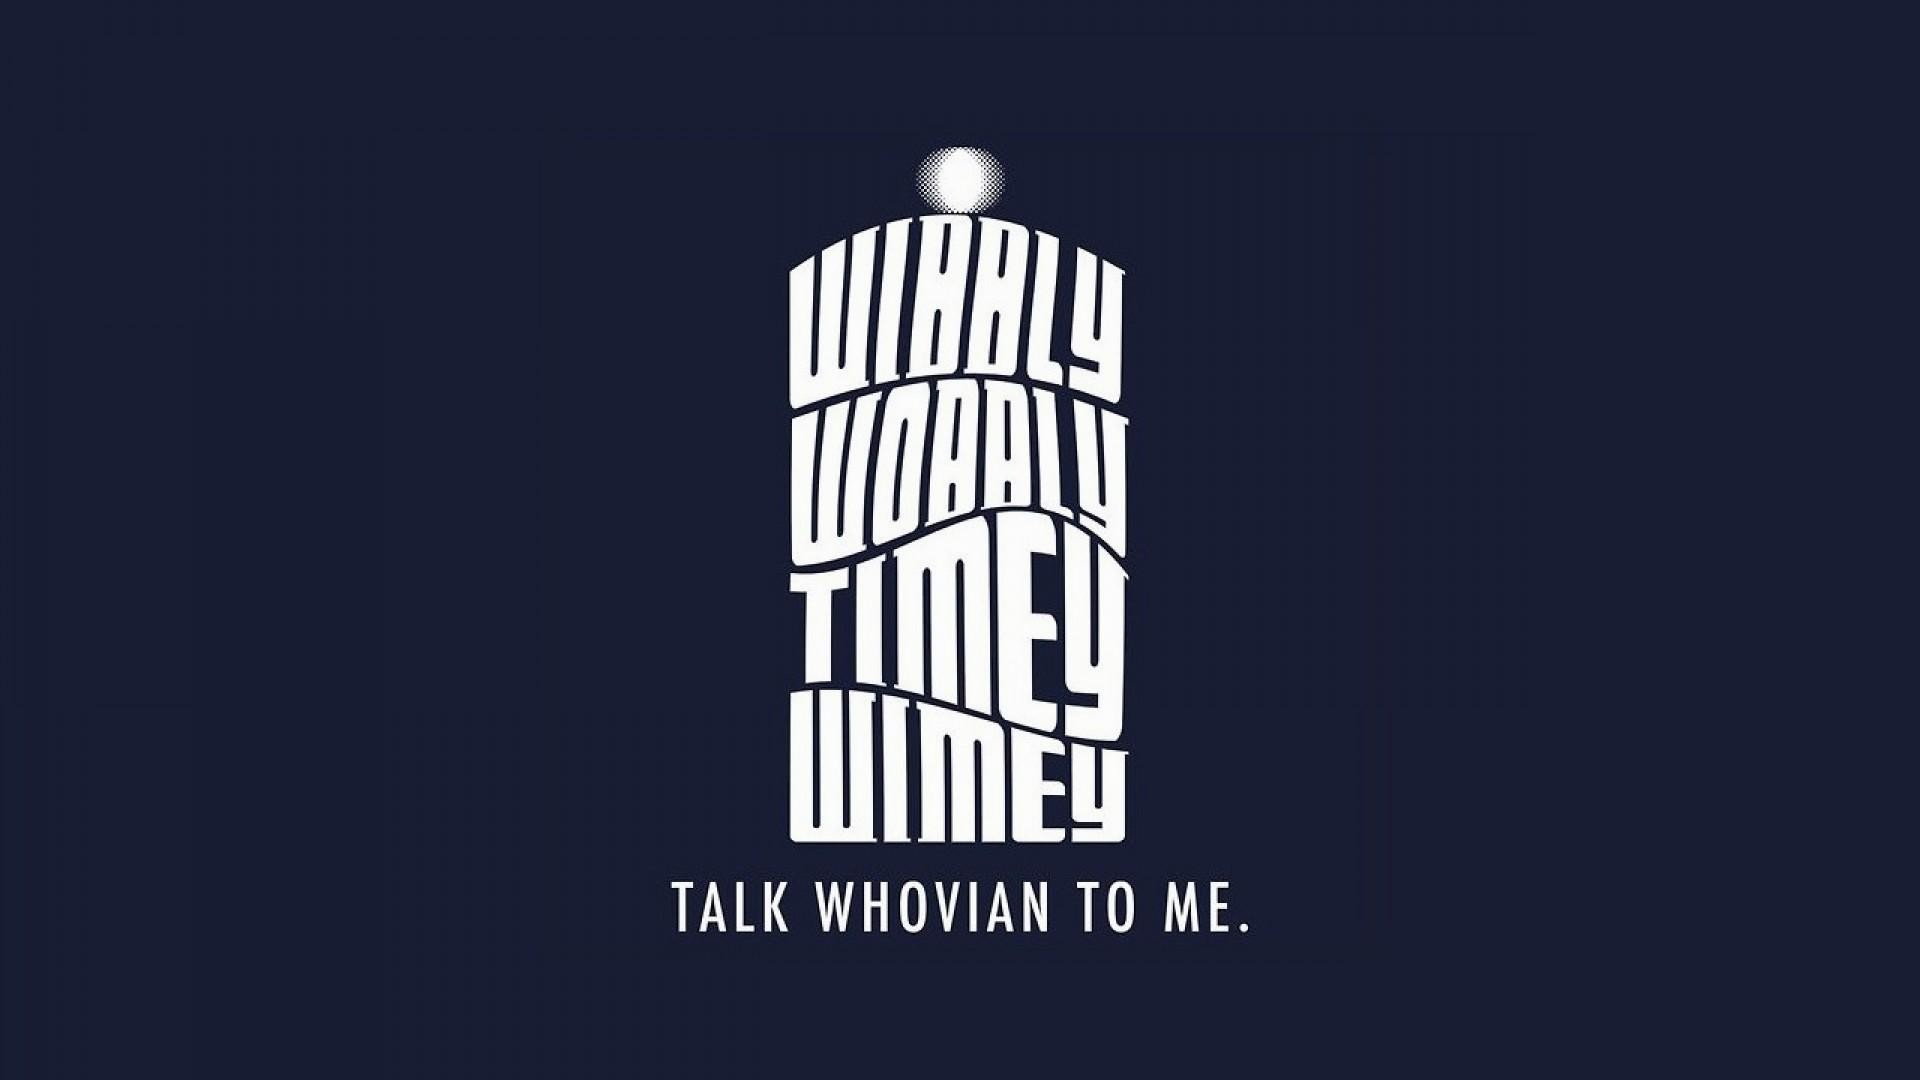 Doctor-Who-Desktop-Backgrounds-1920x1080PX-Dr-Who-wallpaper-